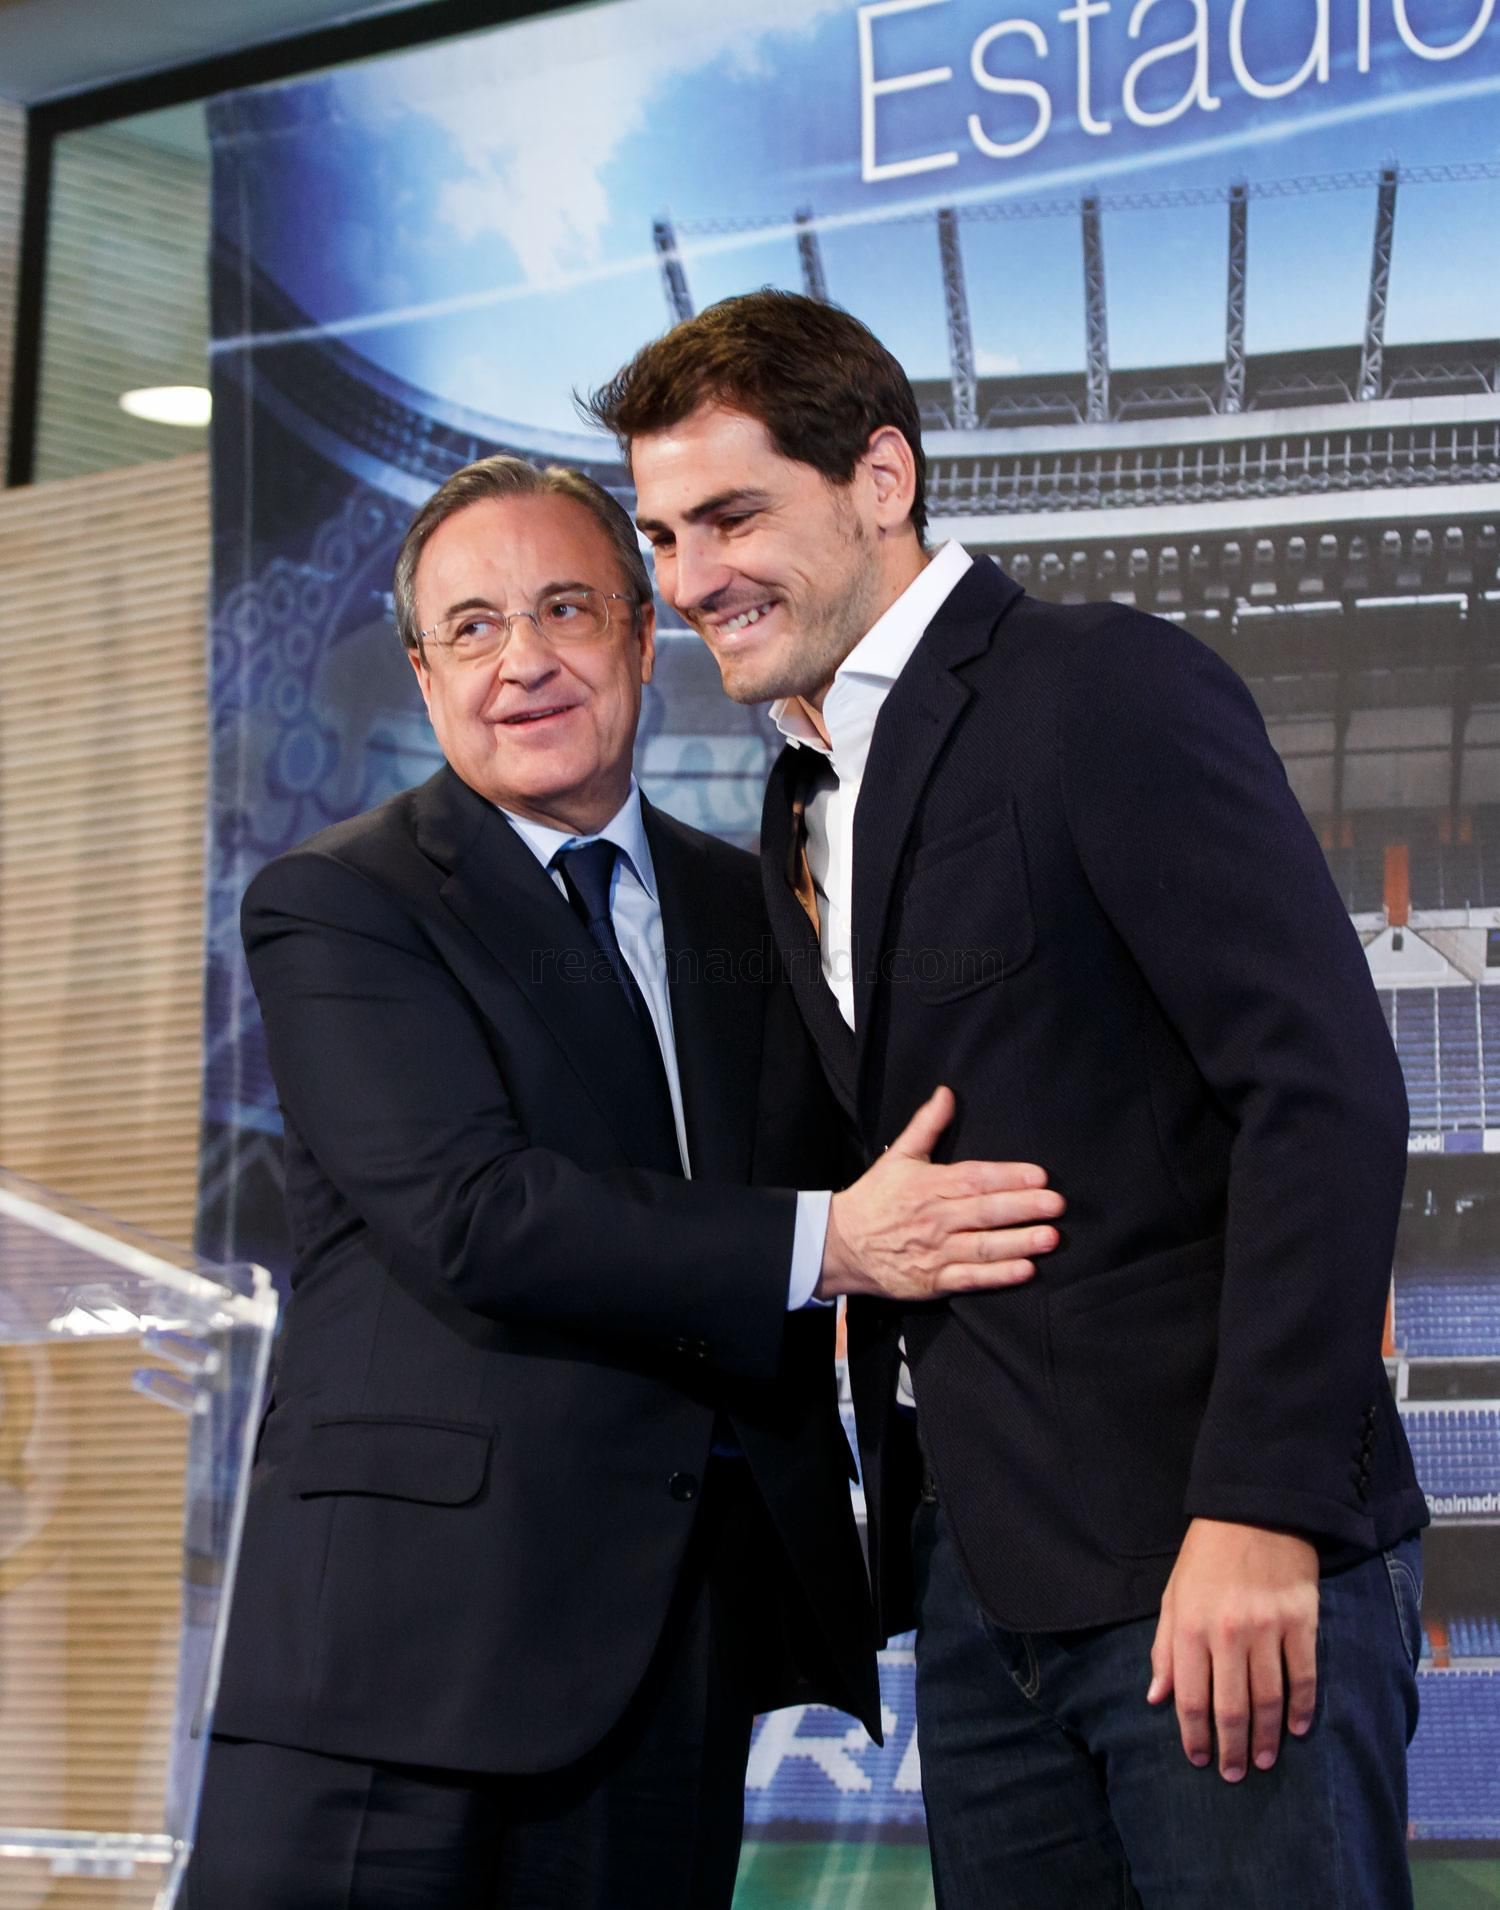 Real Madrid - Despedida de Iker Casillas - 14-07-2015